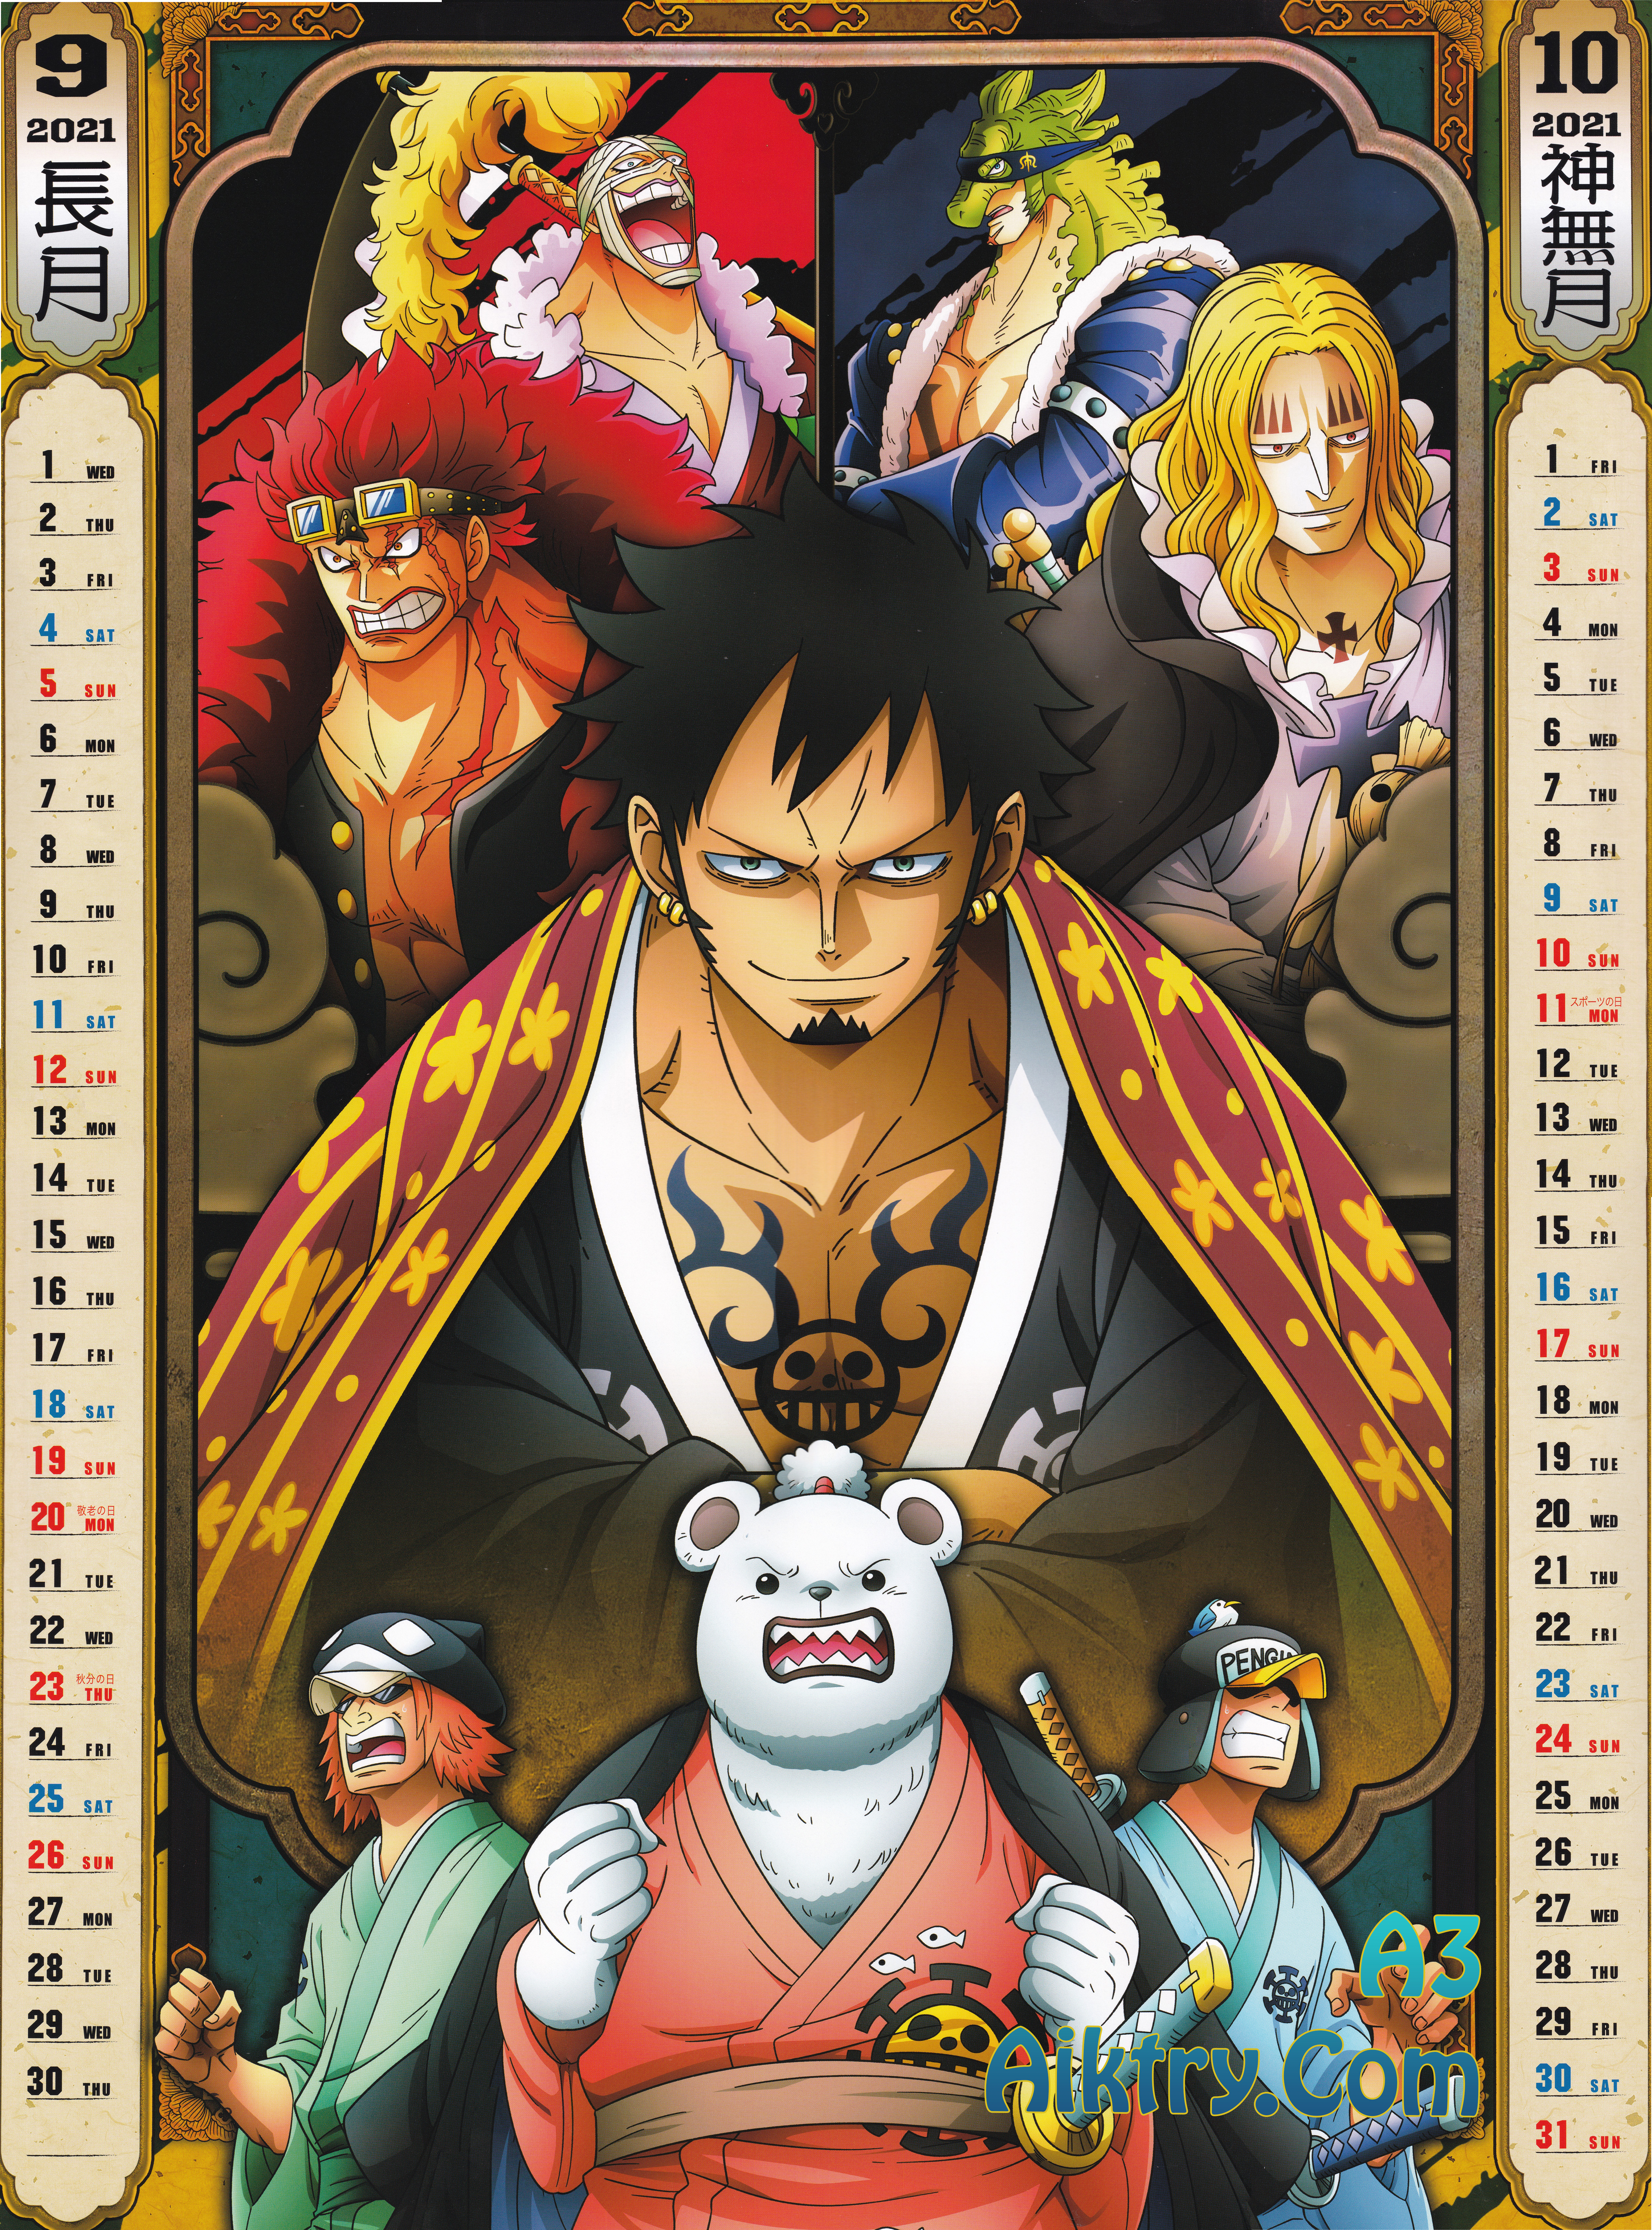 09-10 Kid, X-Drake, Hawkins, Bepo, Law, Penguin, Shachi (One Piece 2021 Calendar)